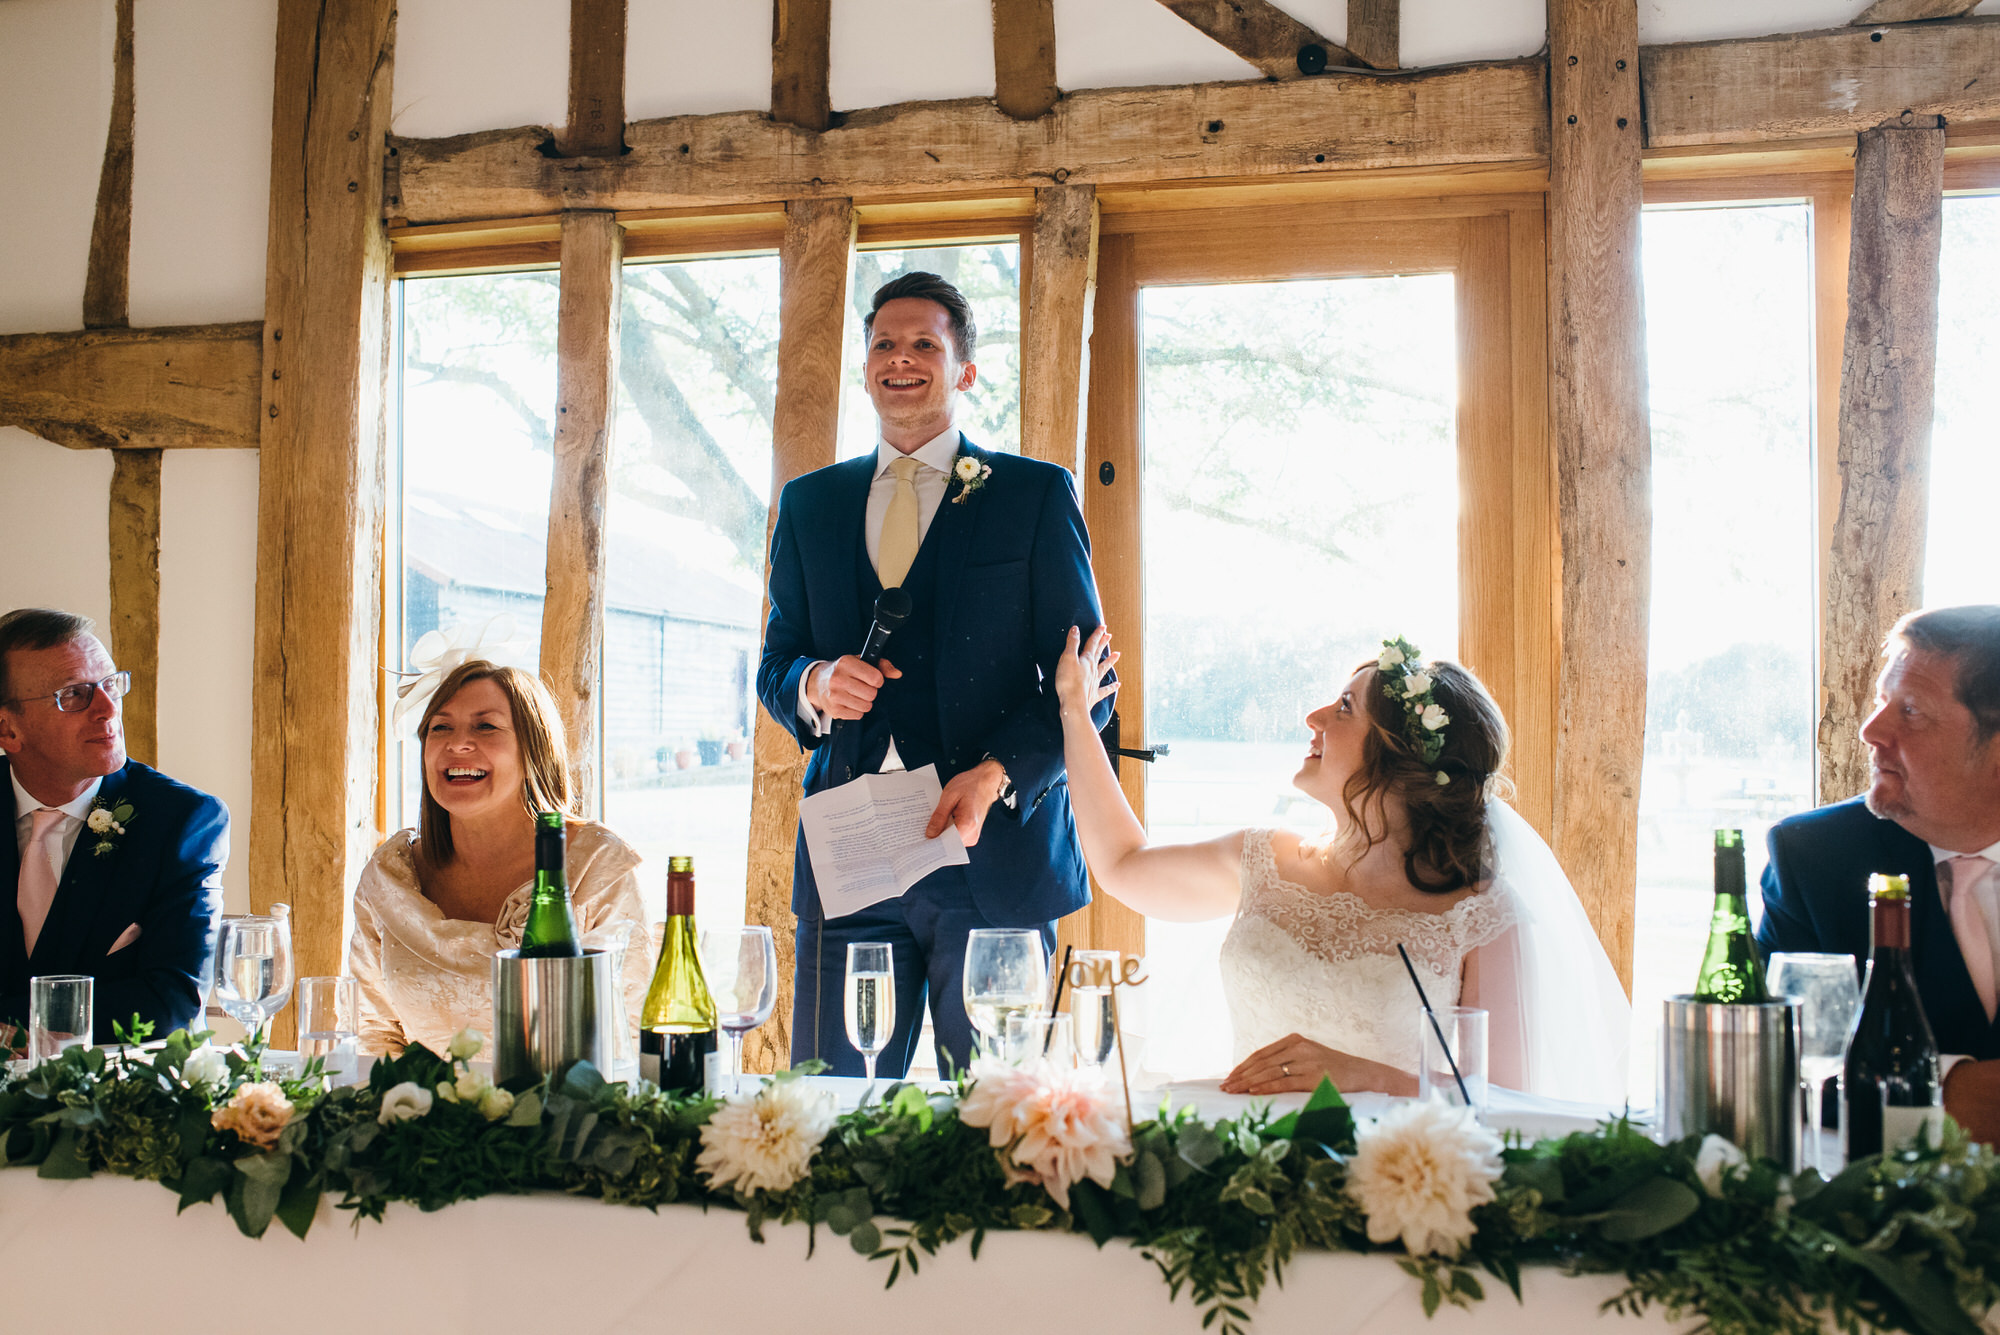 Speeches at Colville hall wedding